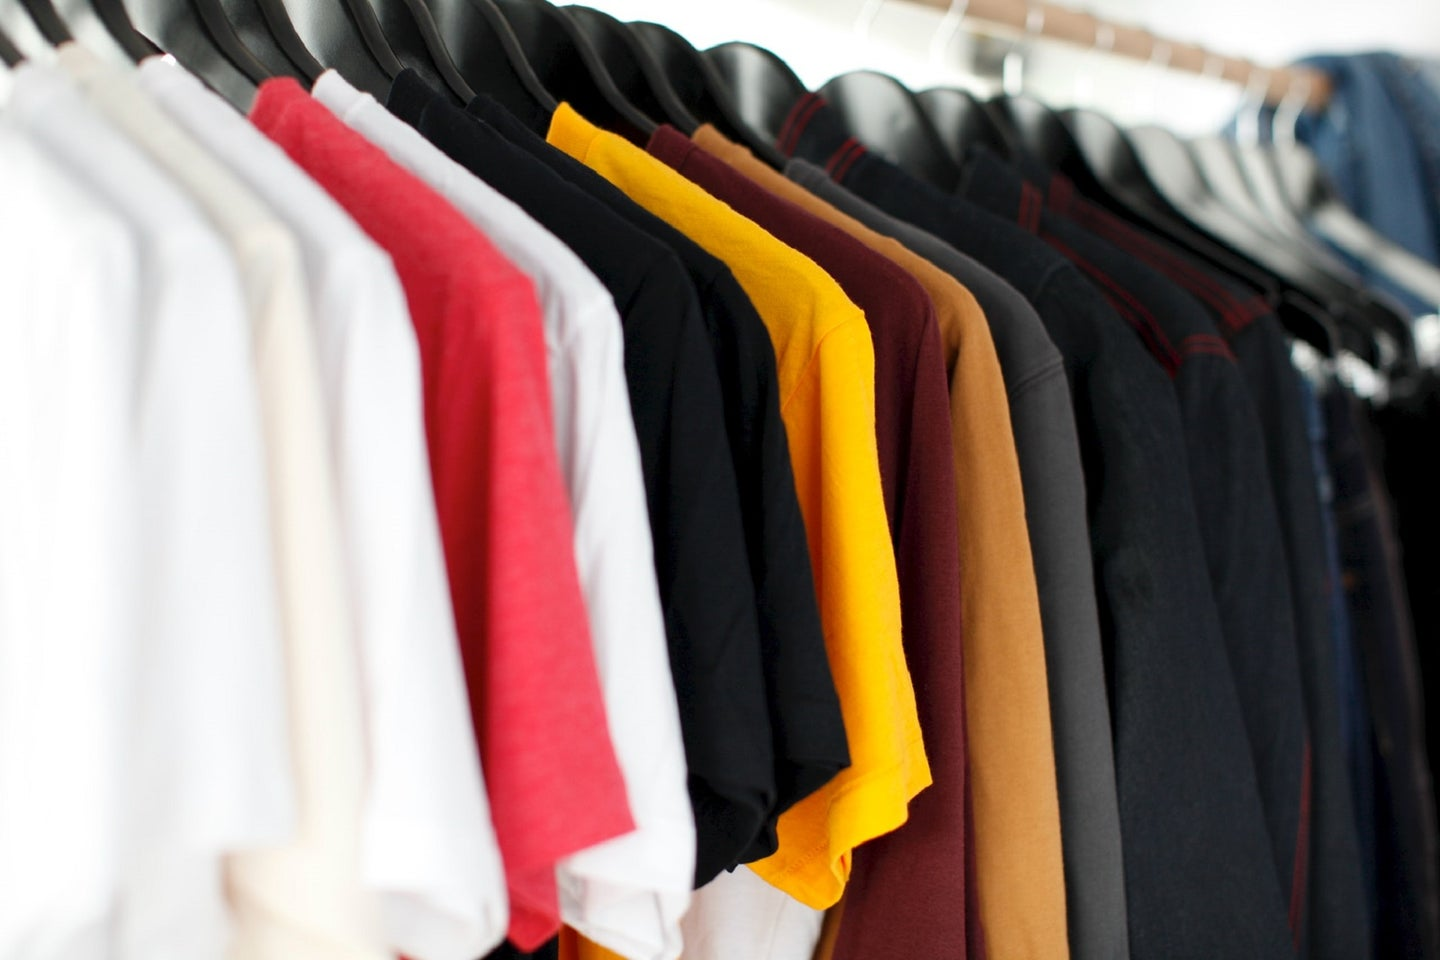 Colorful t-shirts made of soft bamboo